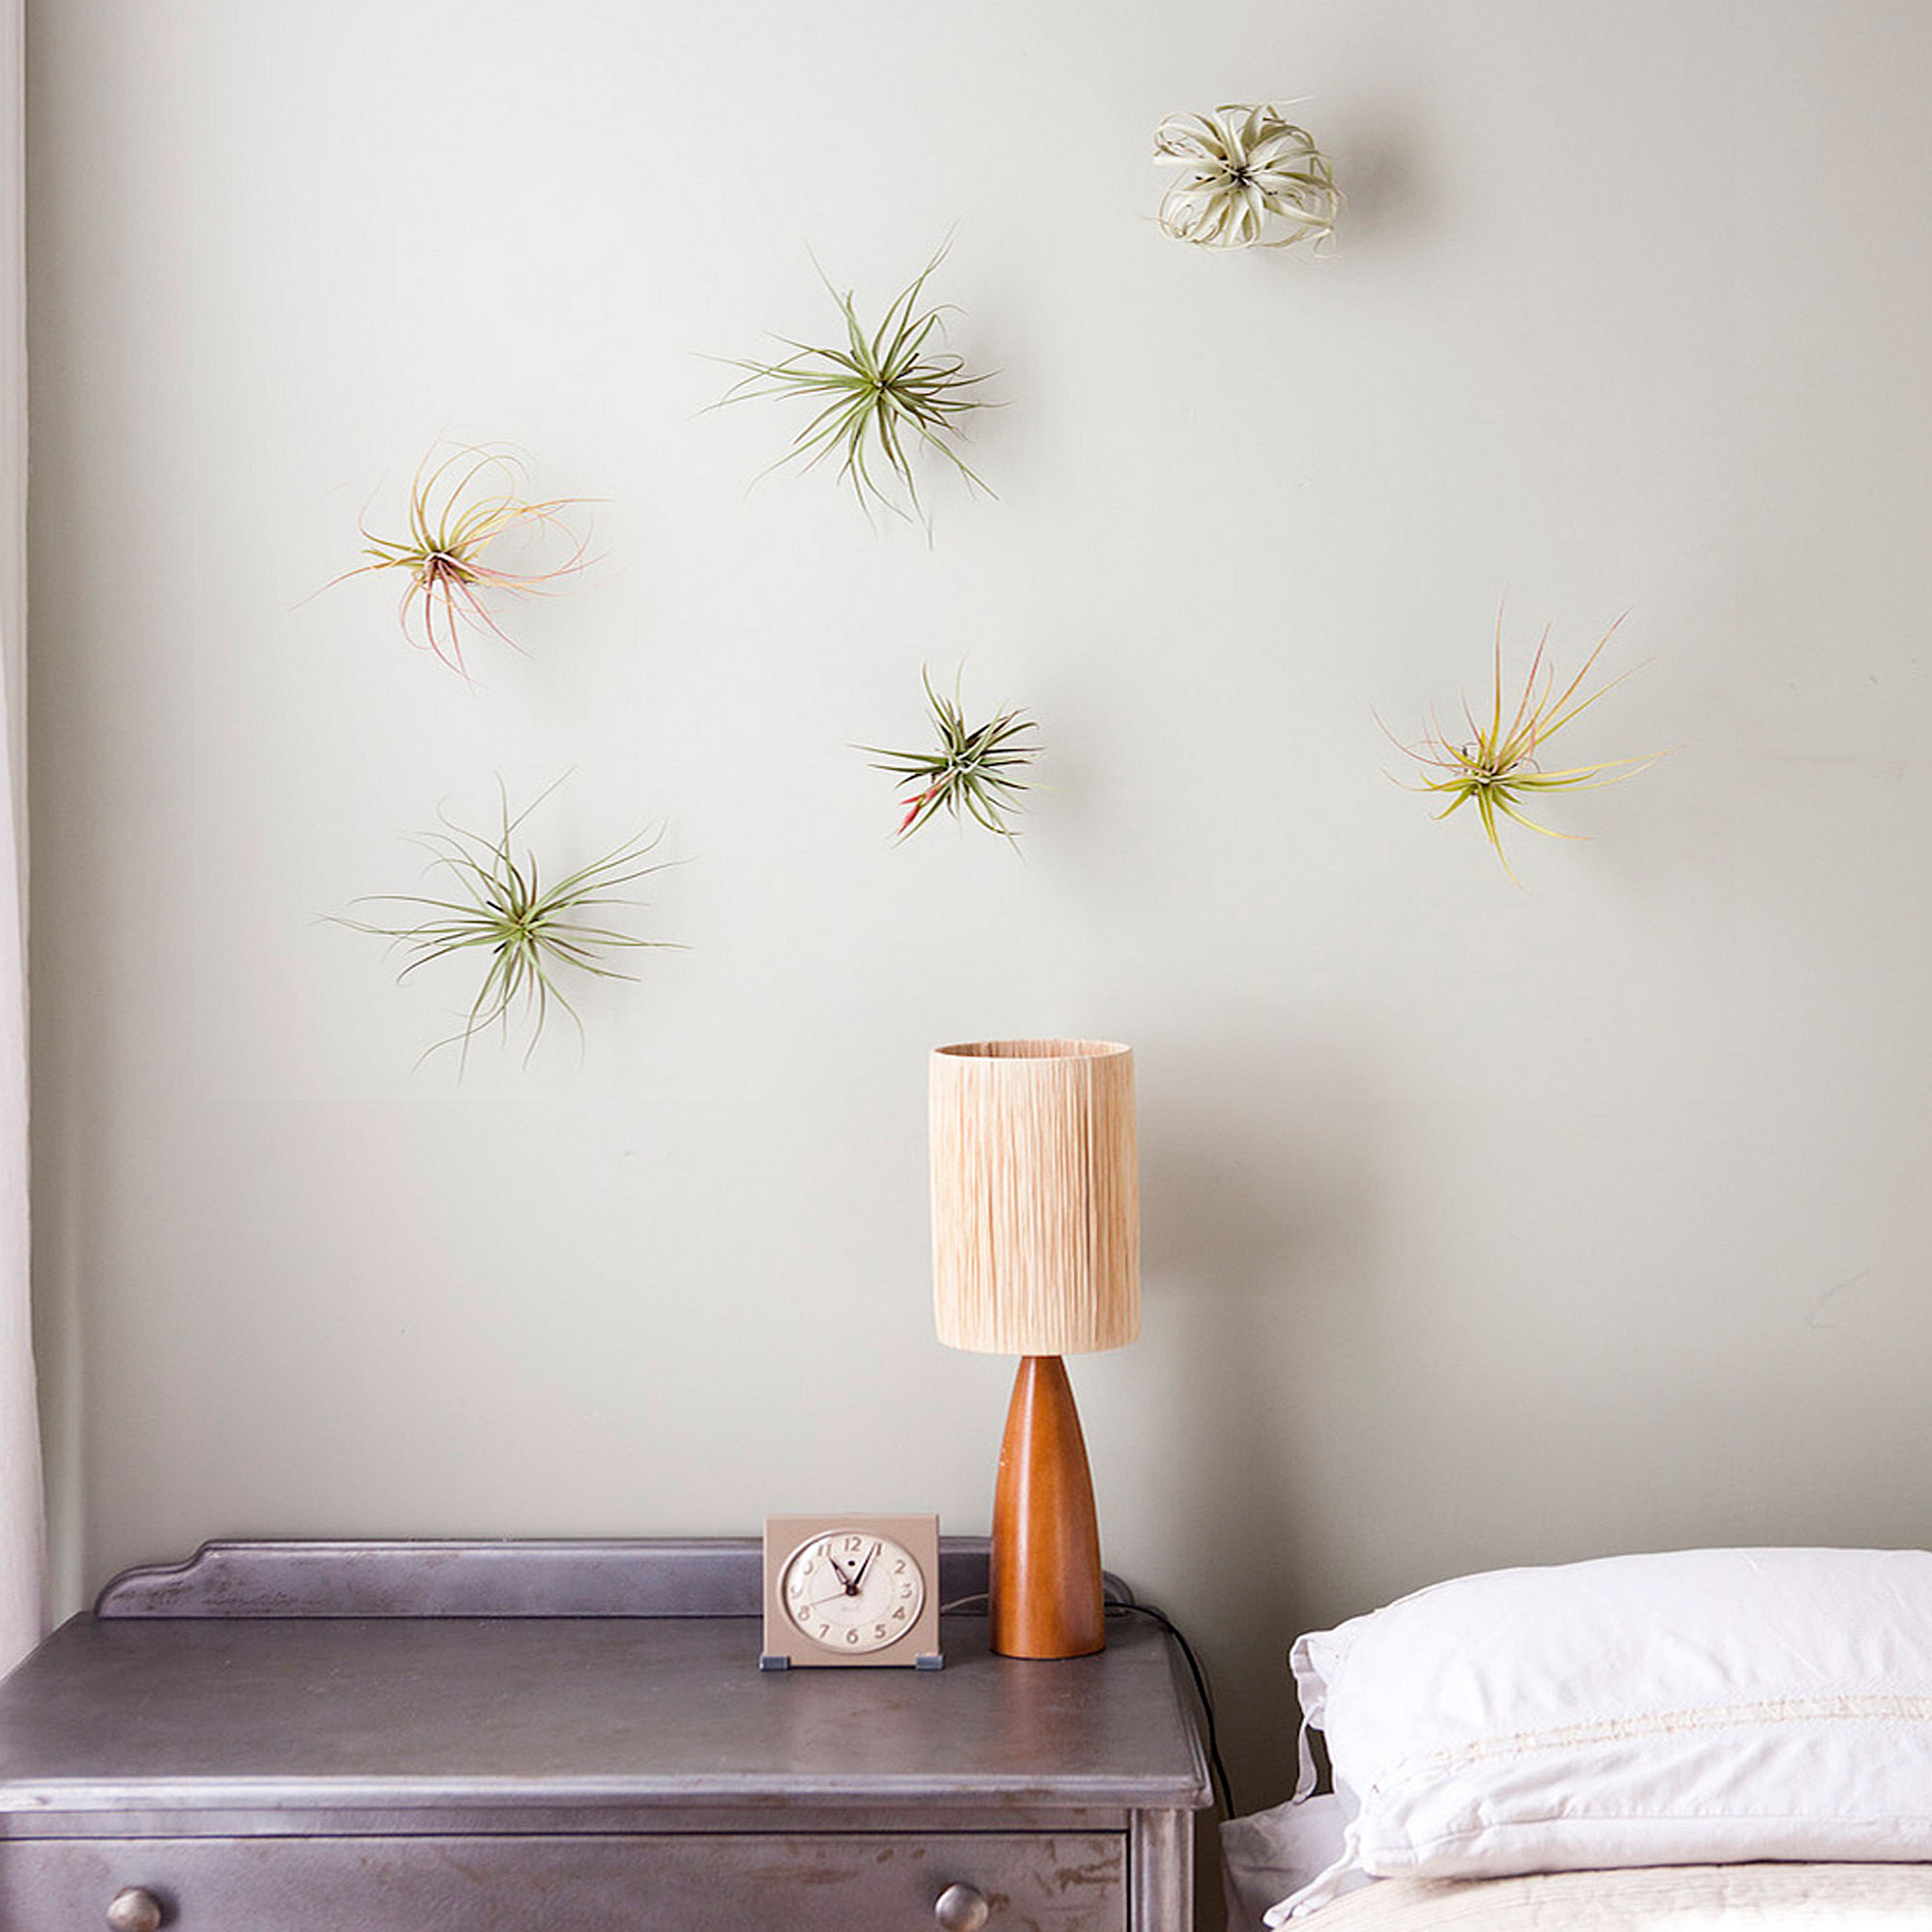 Decorating With Air Plants Sunset Sunset Magazine